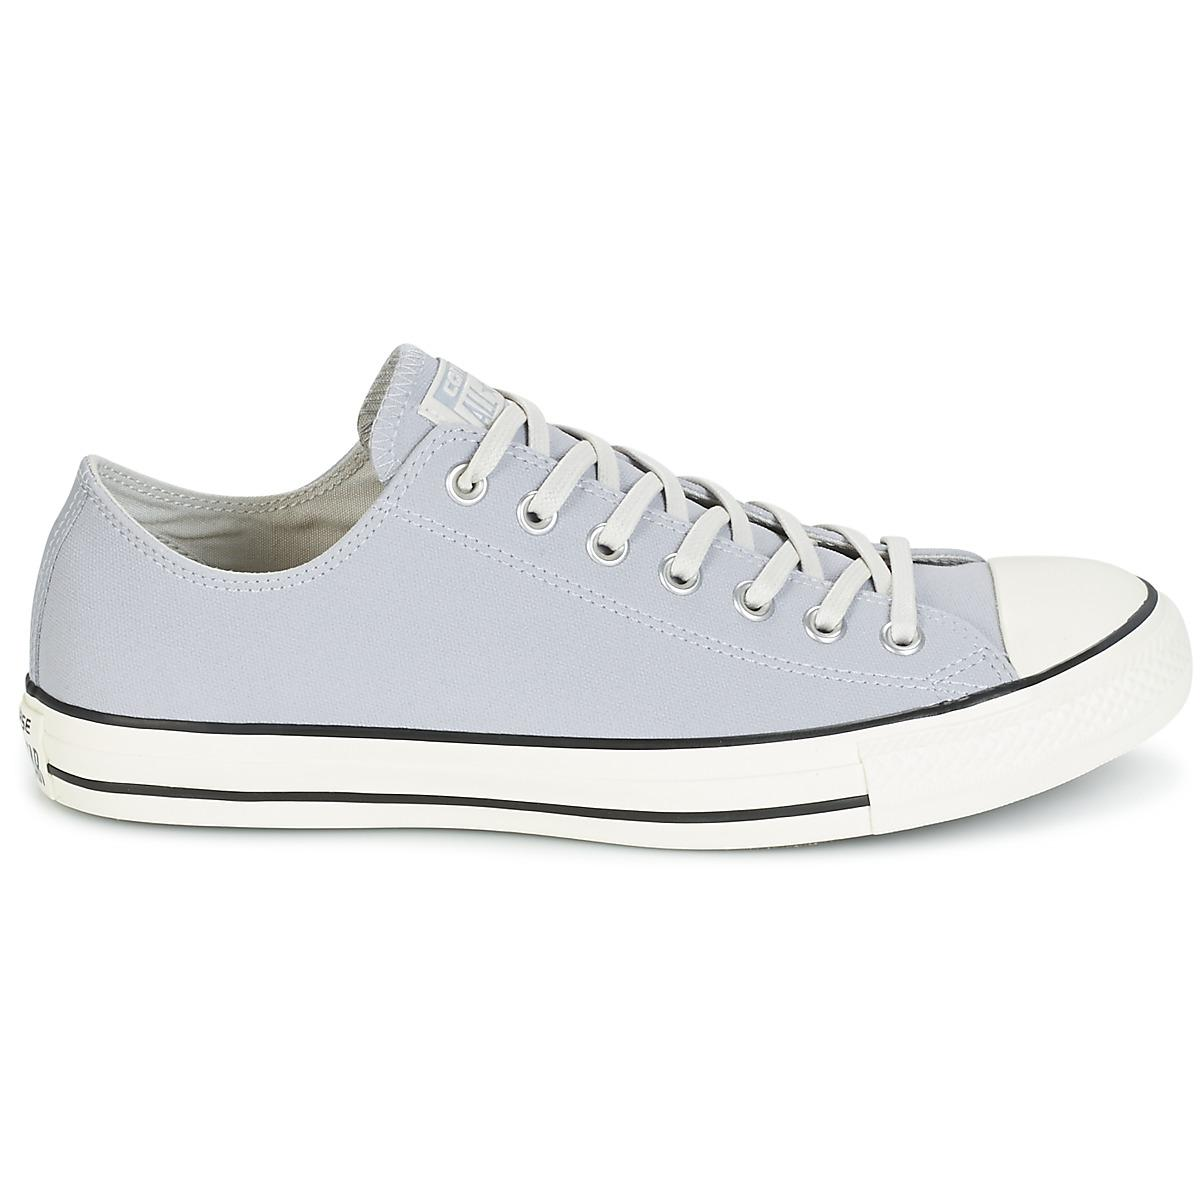 8e70db31057702 Converse Chuck Taylor All Star Coated Leather Ox Wolf Grey black ...